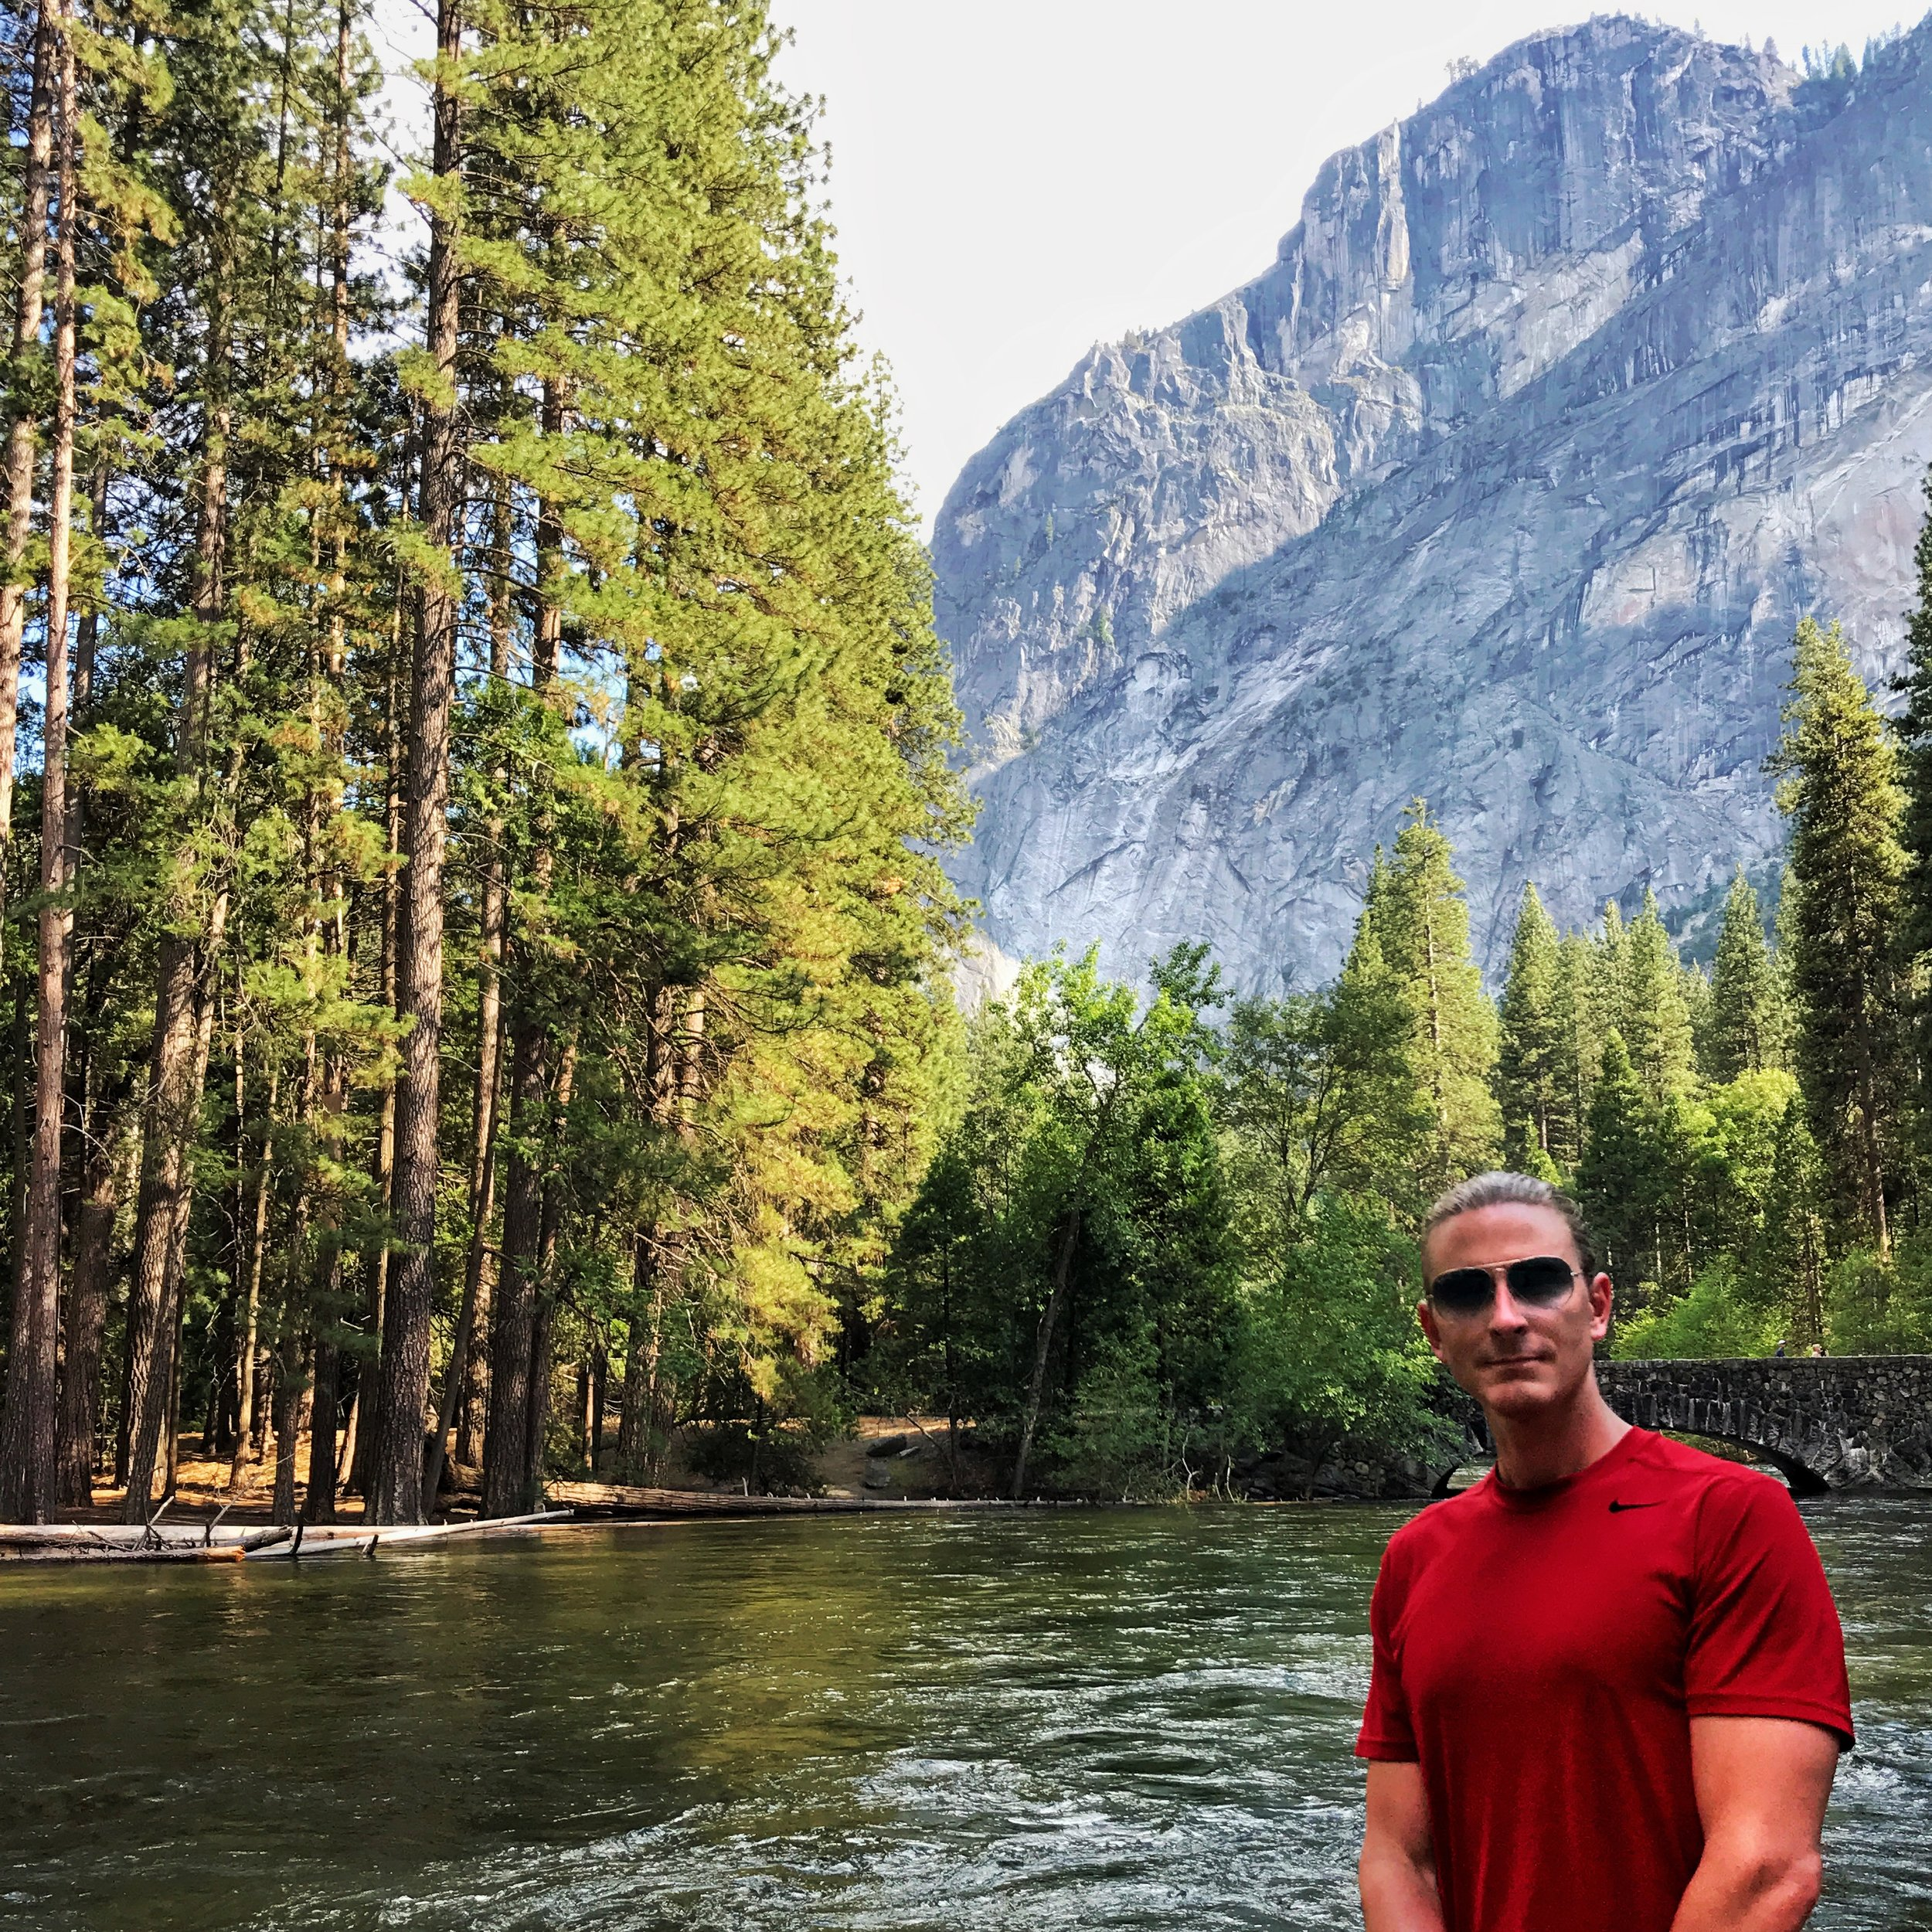 Hanging out by the merced river